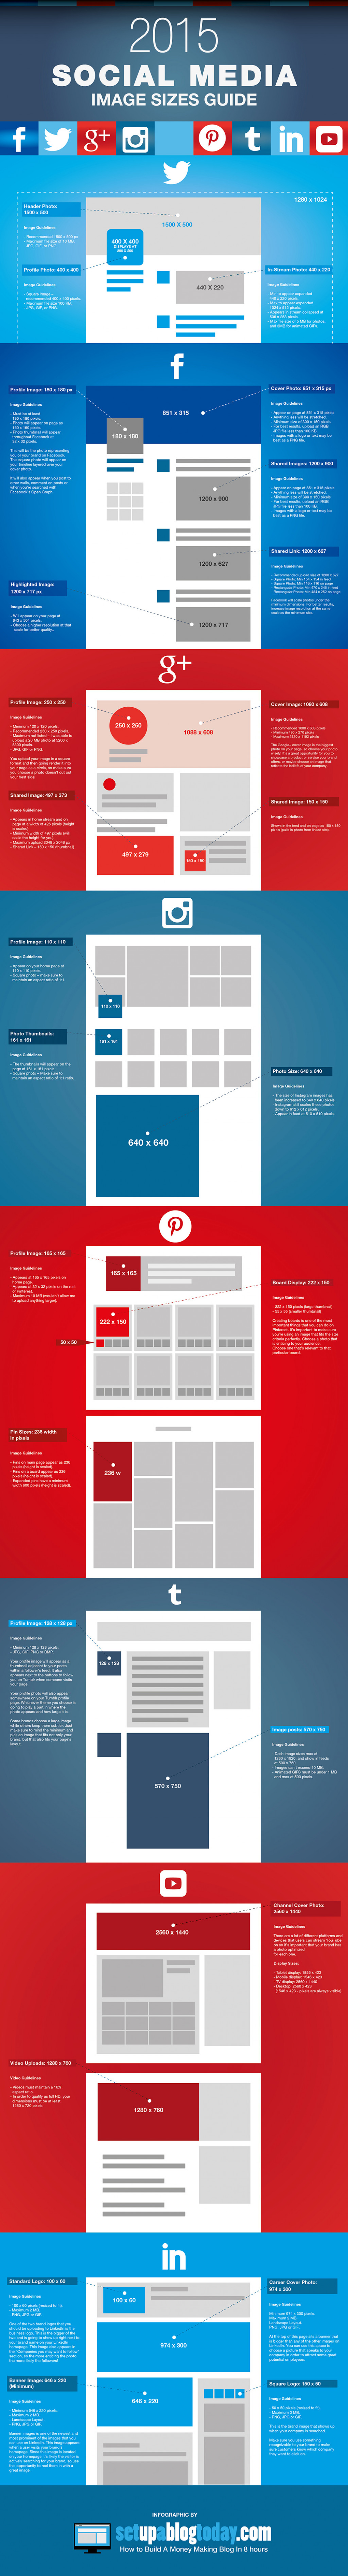 Social Media - Afmetingen van afbeeldingen Cheat Sheet 2015